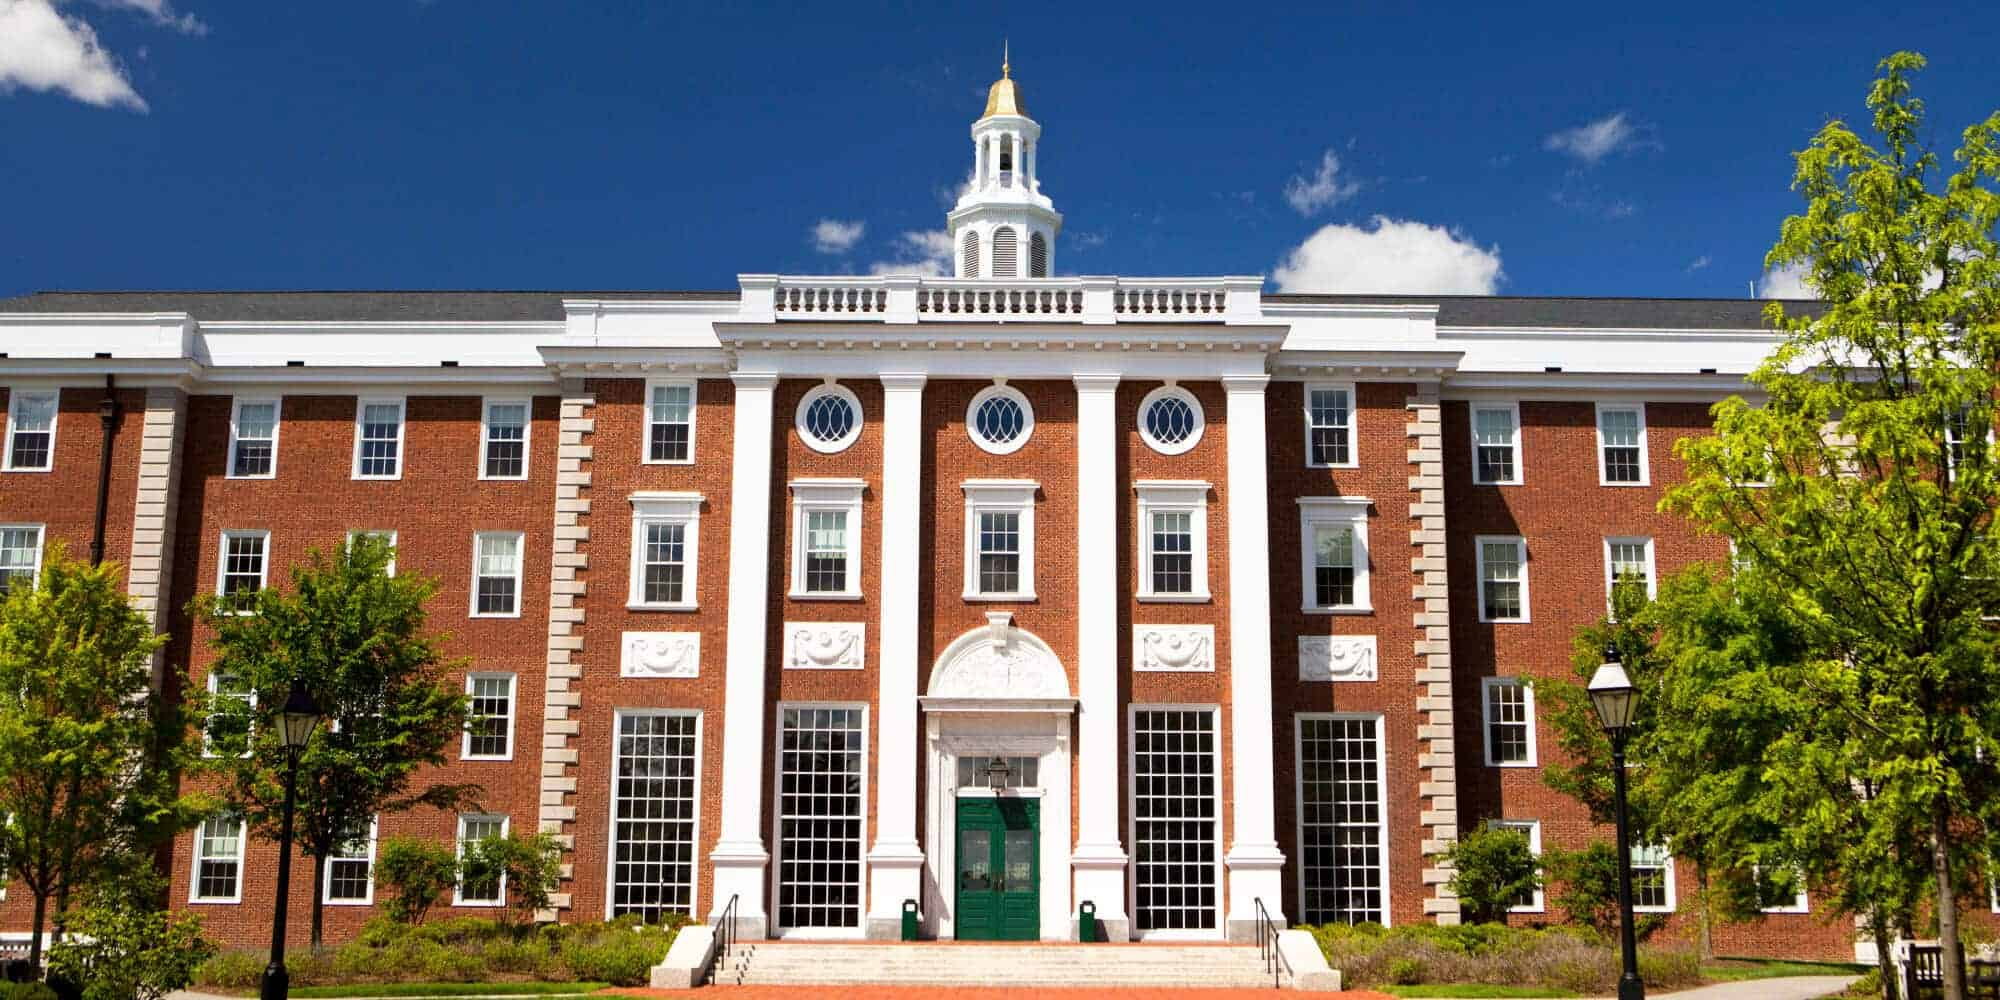 Harvard University Rankings, Tuition, Acceptance Rate, etc.